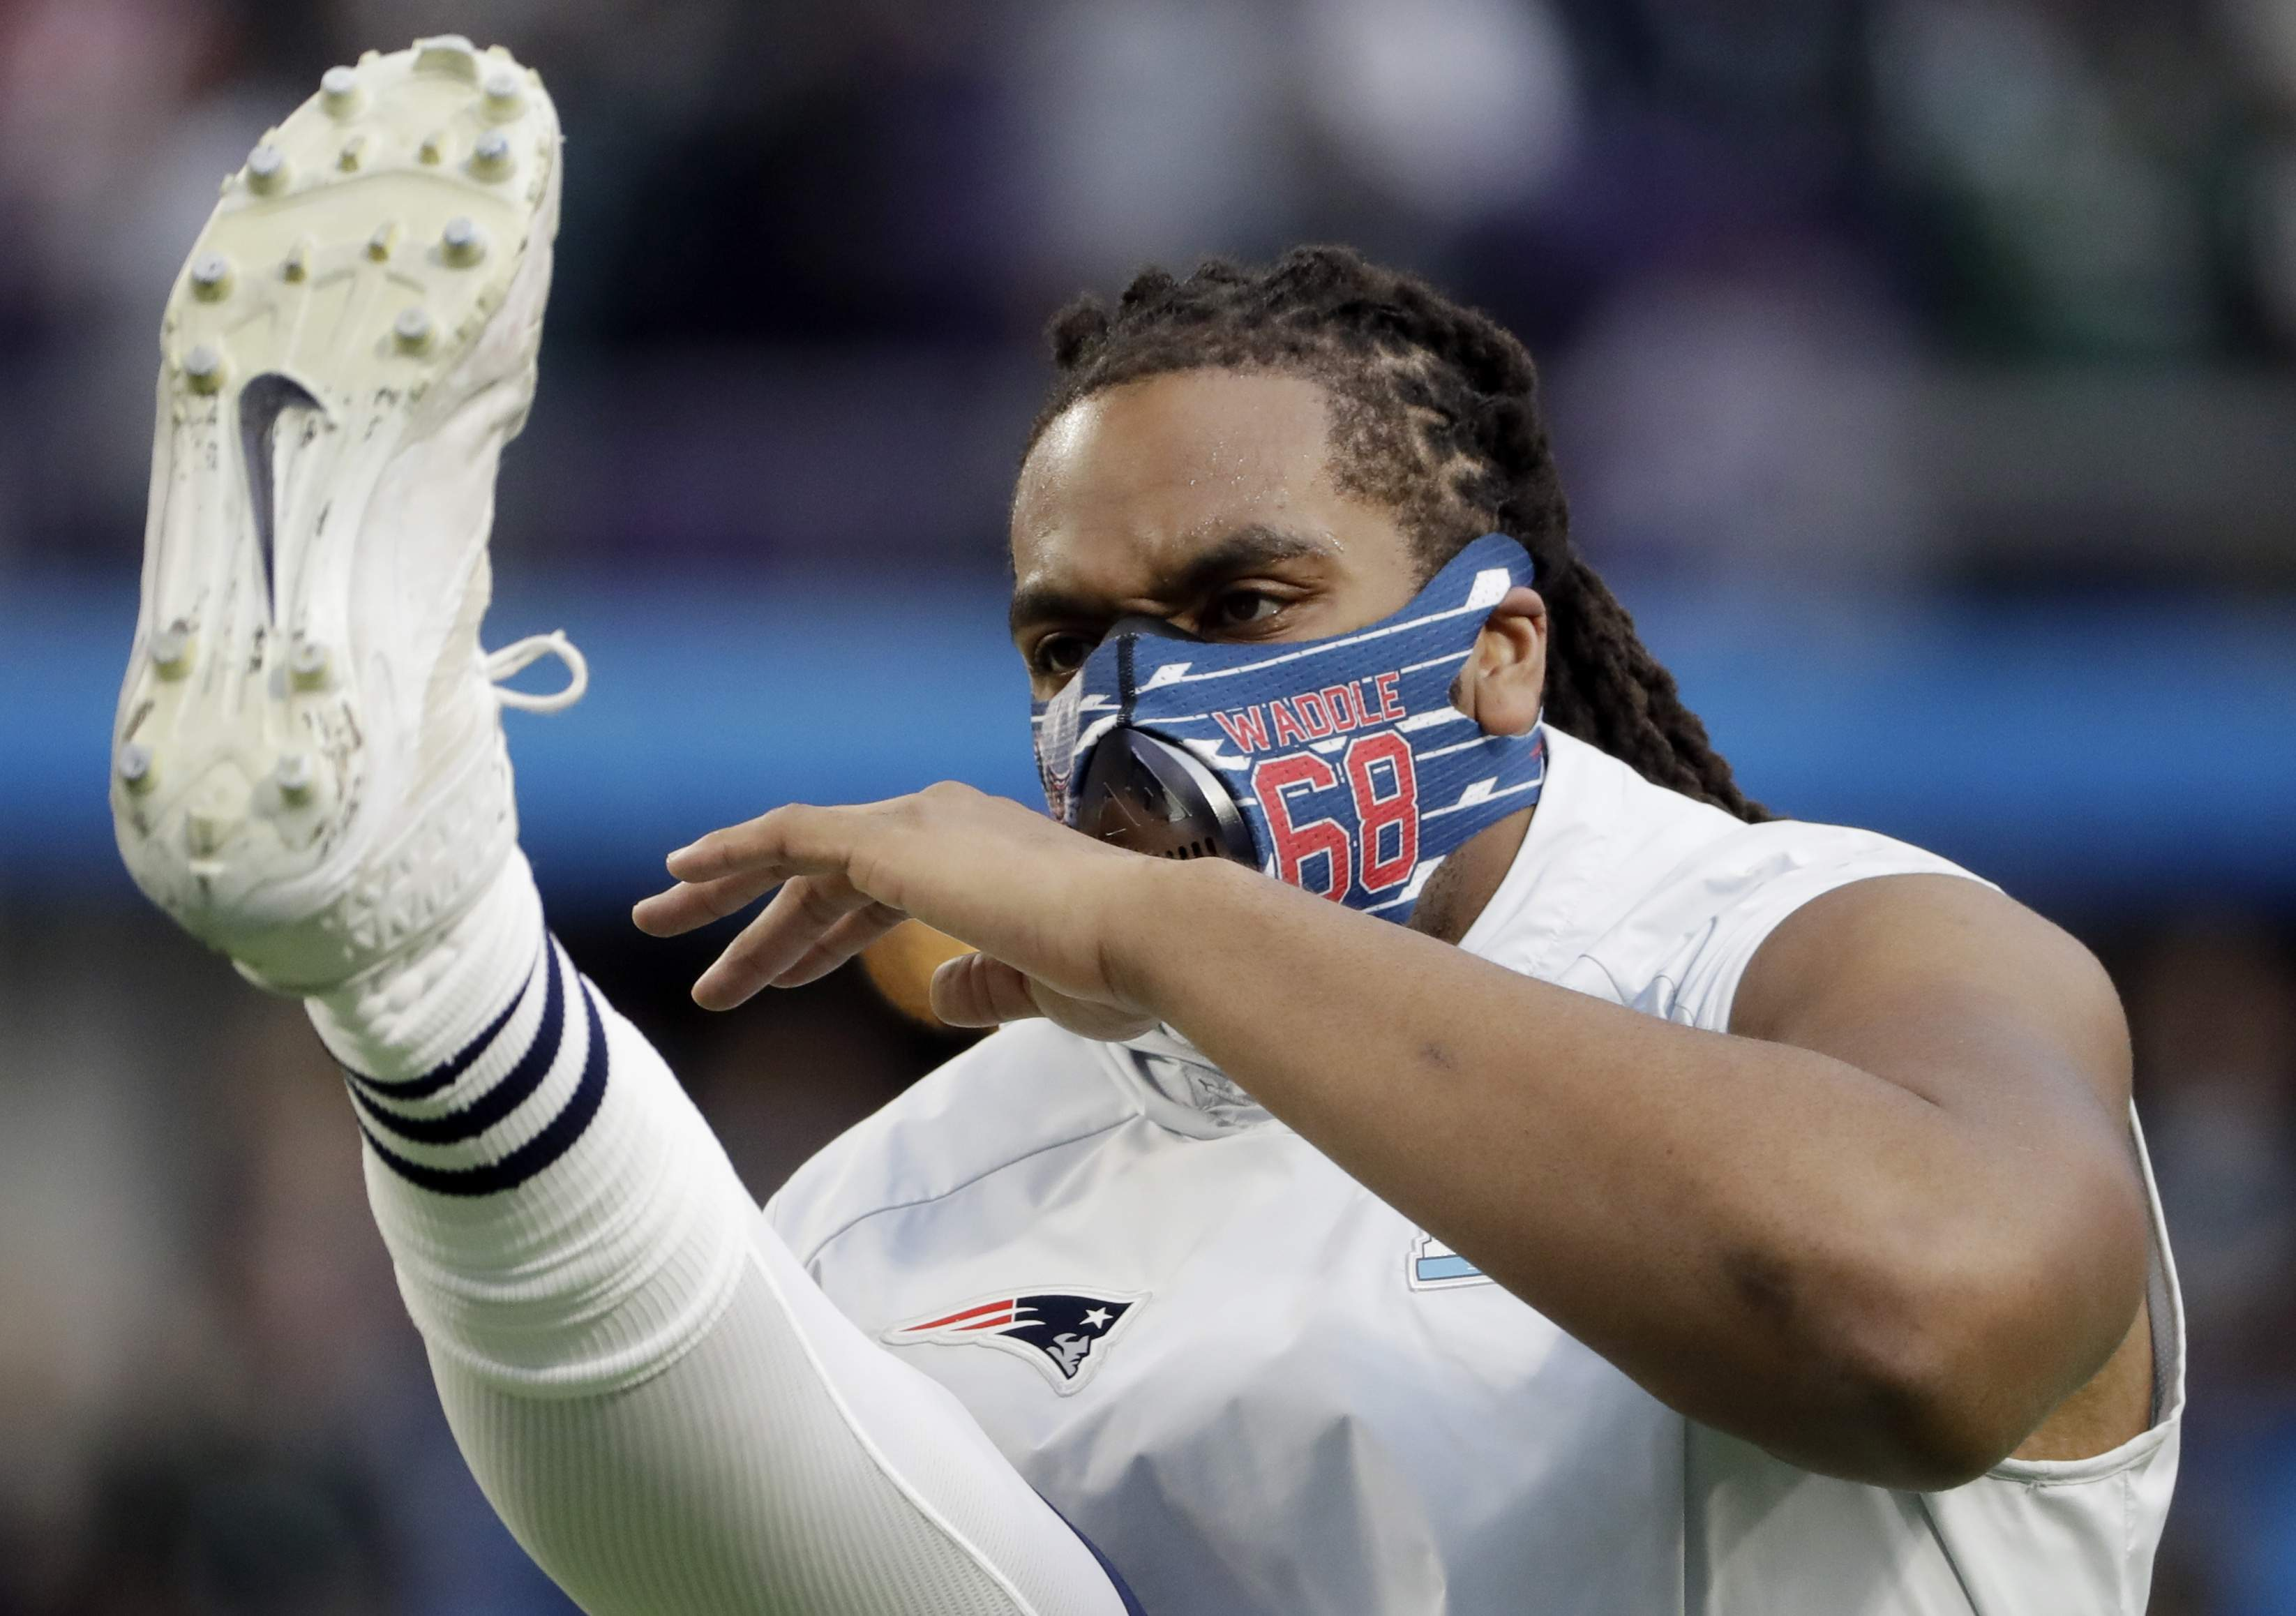 New England Patriots offensive tackle LaAdrian Waddle, warms up before the NFL Super Bowl 52 football game against the Philadelphia Eagles, Sunday, Feb. 4, 2018, in Minneapolis. (AP Photo/Chris O'Meara)